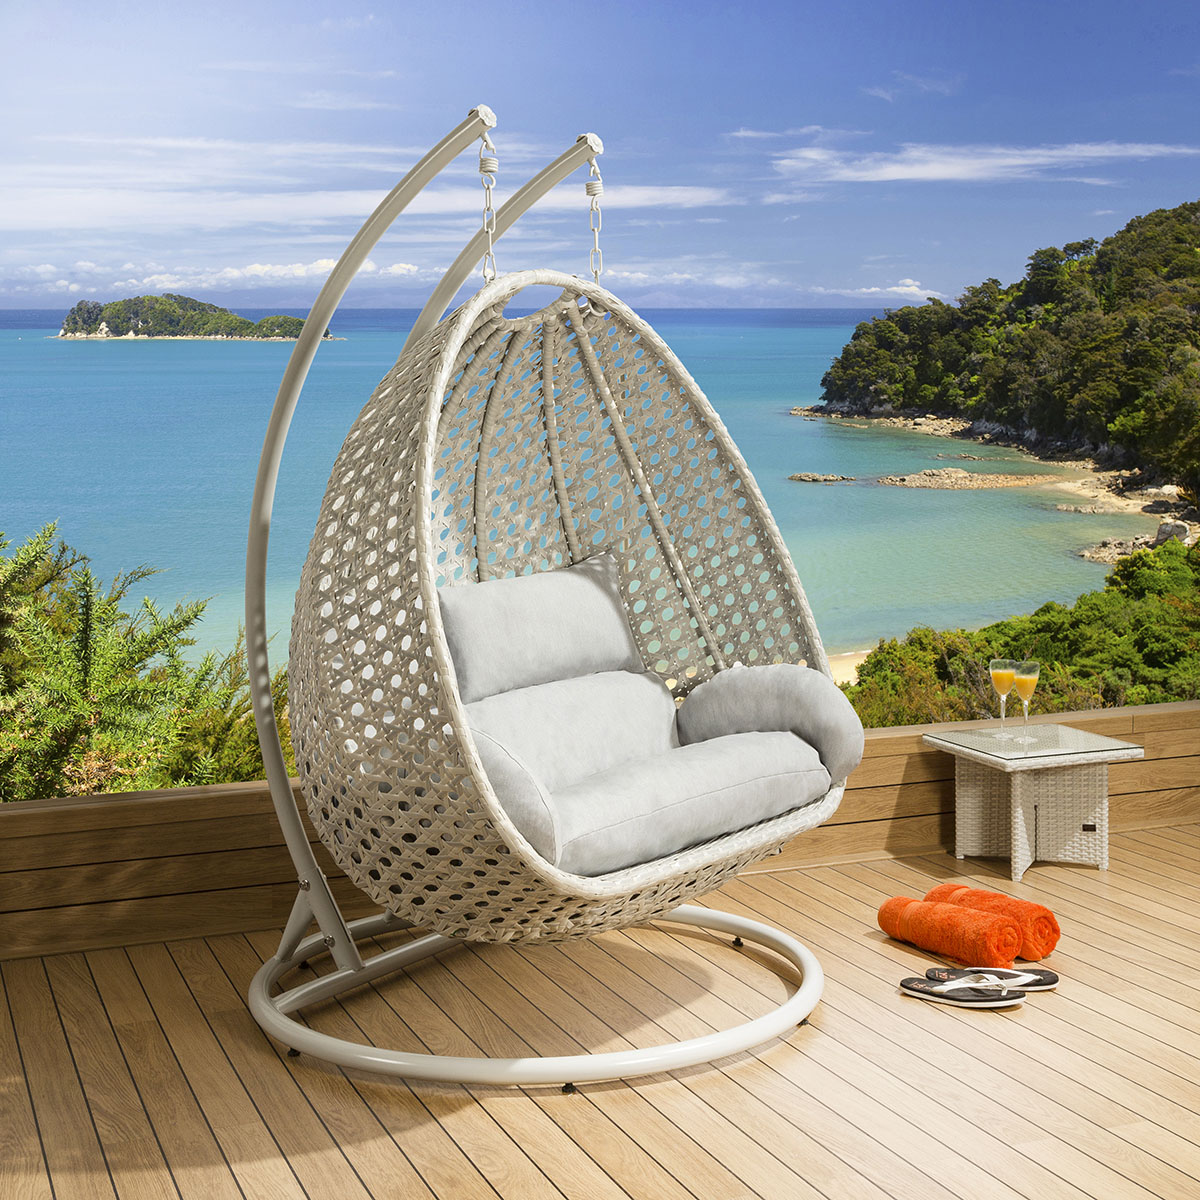 Double Egg Chair Details About Garden Double Hanging Egg Chair In Light Grey Stone Heavy Duty New